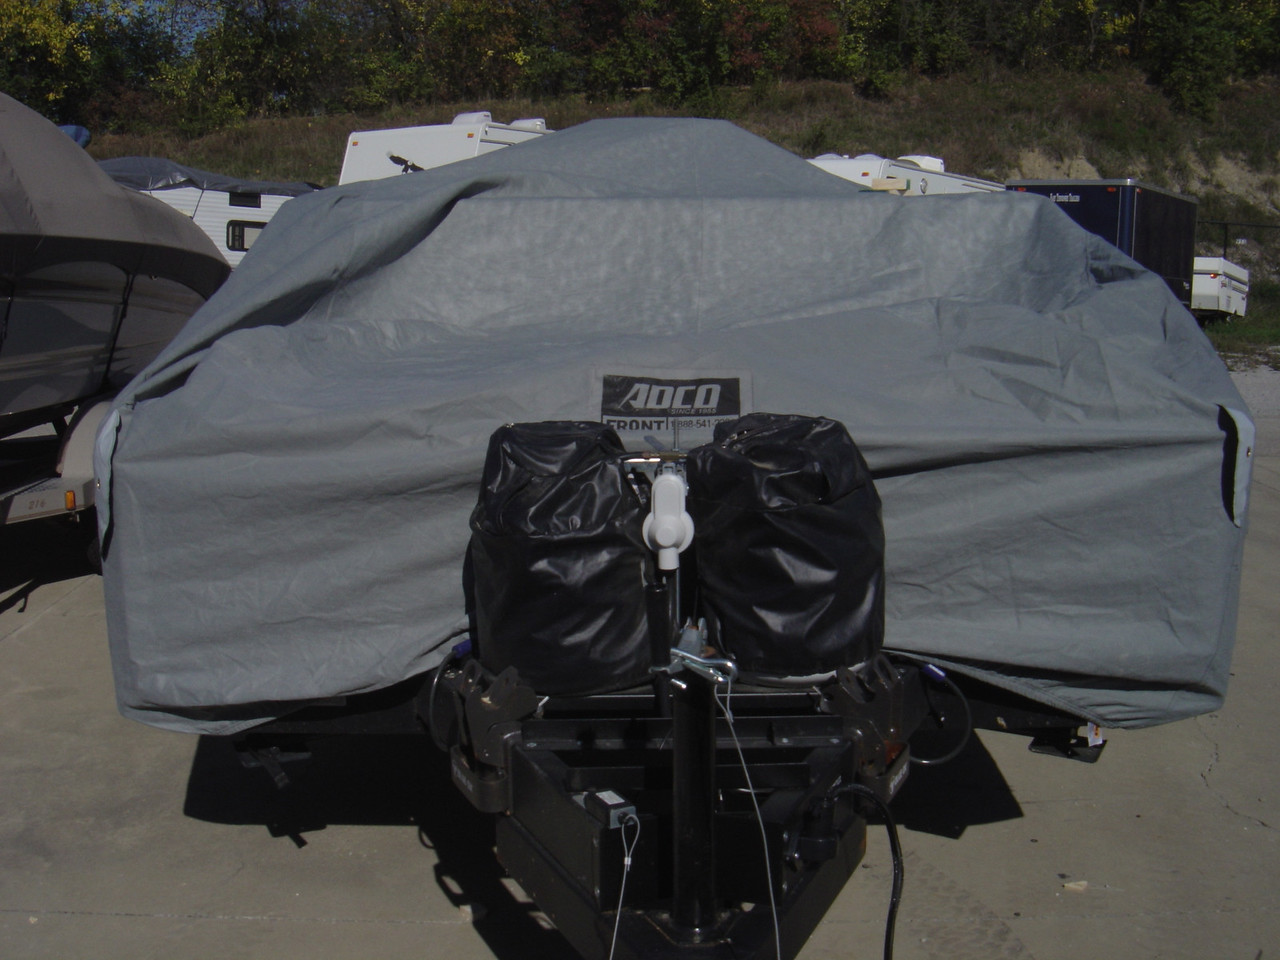 ADCO cover from the front of PUP.  This cover is breathable and will allow water to evaporate from inside the PUP.